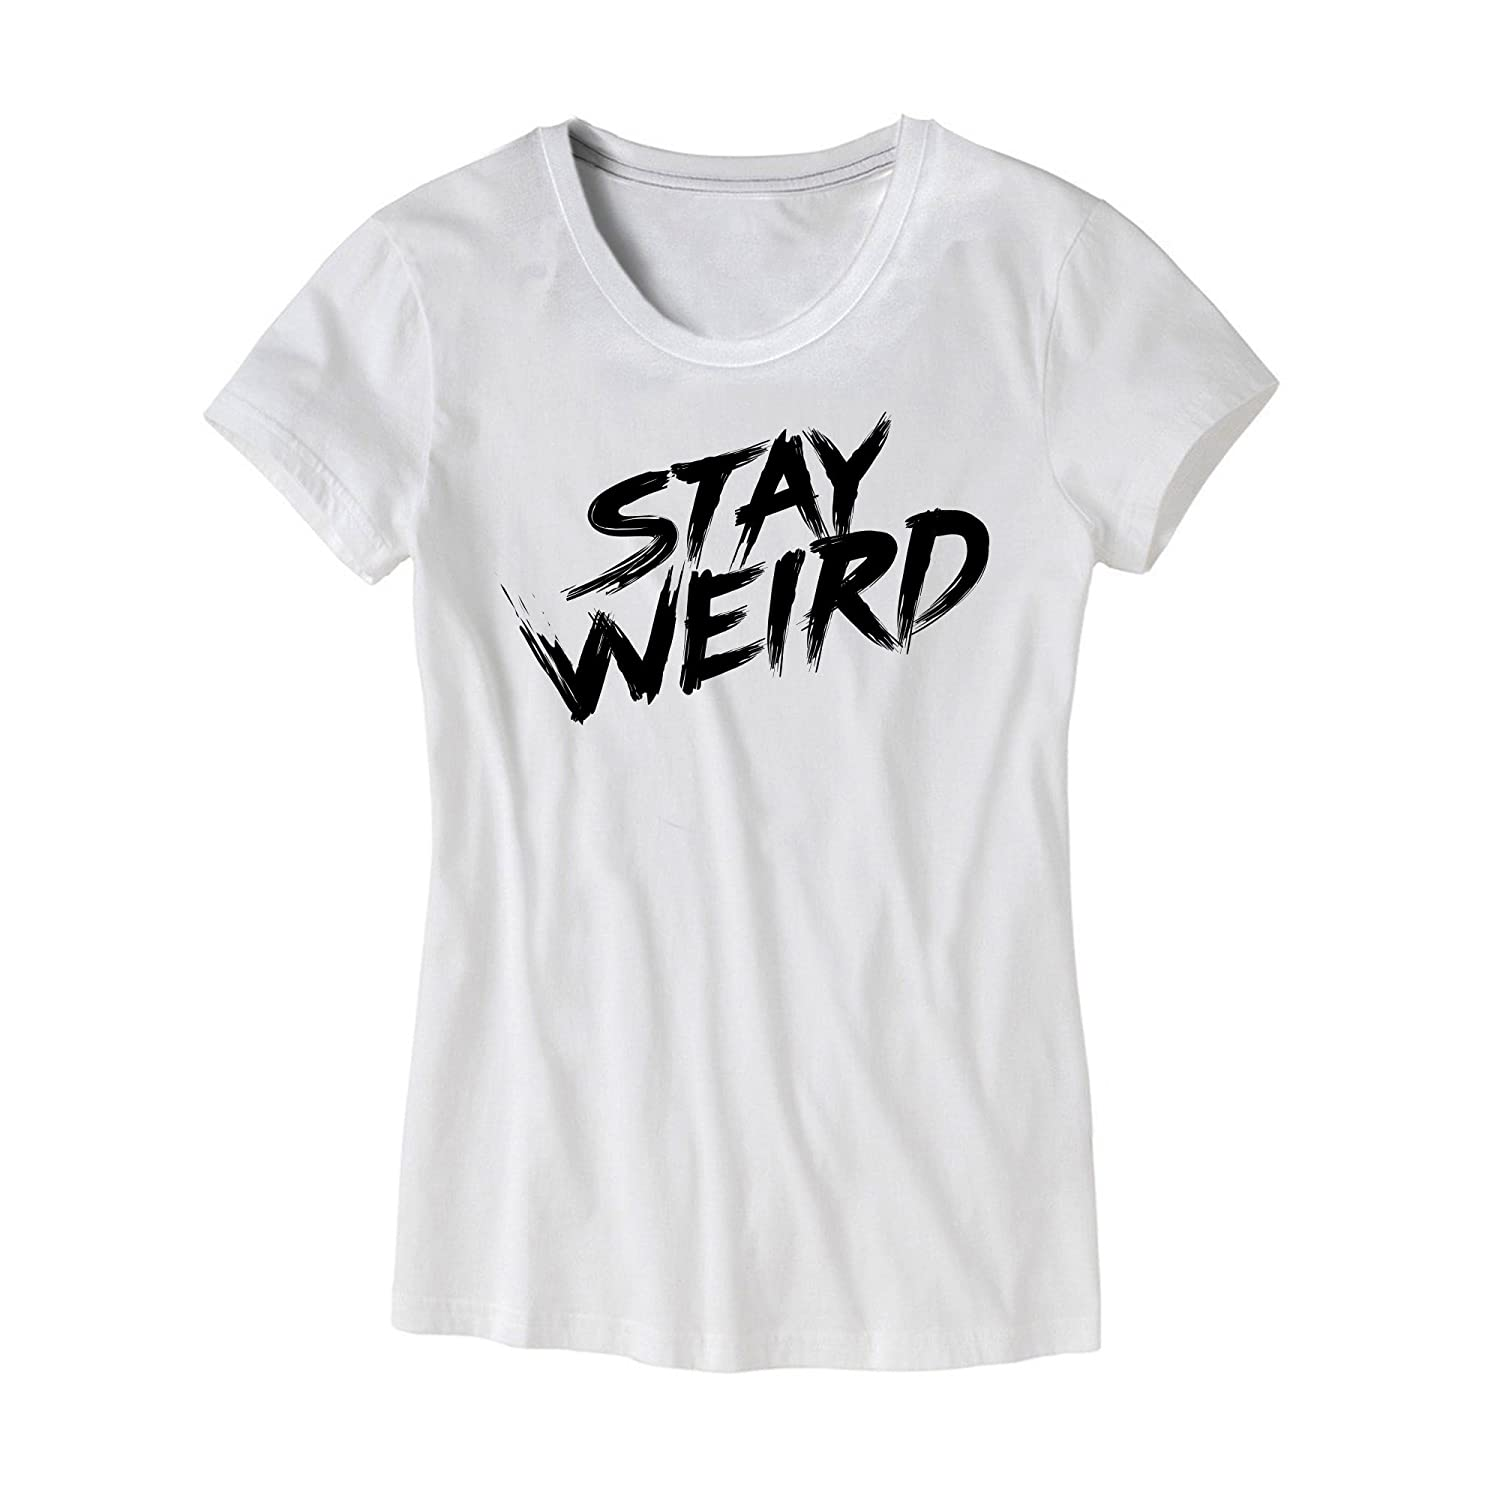 5ad659477878fc Funny Stay Weird Shirt Womens Stay Weird Girls Hipster T-Shirt Authentic HG  Apparel Brand Ladies Music Festival Party Tee - Proudly Printed in the USA